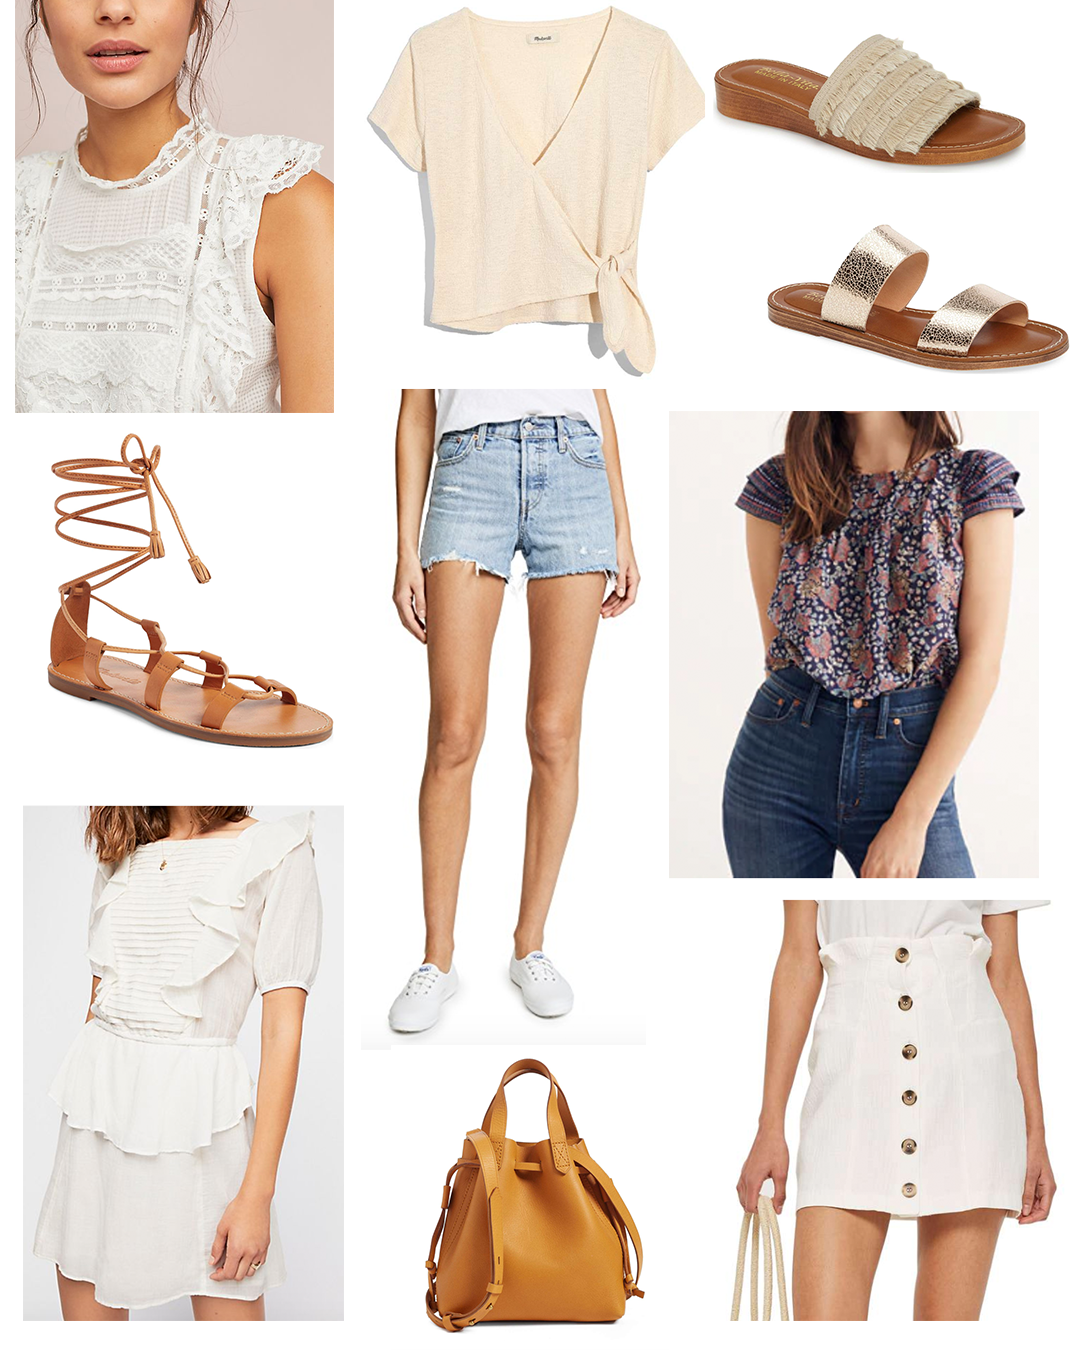 From left to right.  Anthropologie Top  |  Madewell Tee  |  Bella Vita Slides  |  Bella Vita Sandals  |  Madewell Lace-Up Sandals  |  Levi's Shorts  |  Madewell Top  |  Free People Dress  |  Madewell Bag  |  Nordstrom Skirt